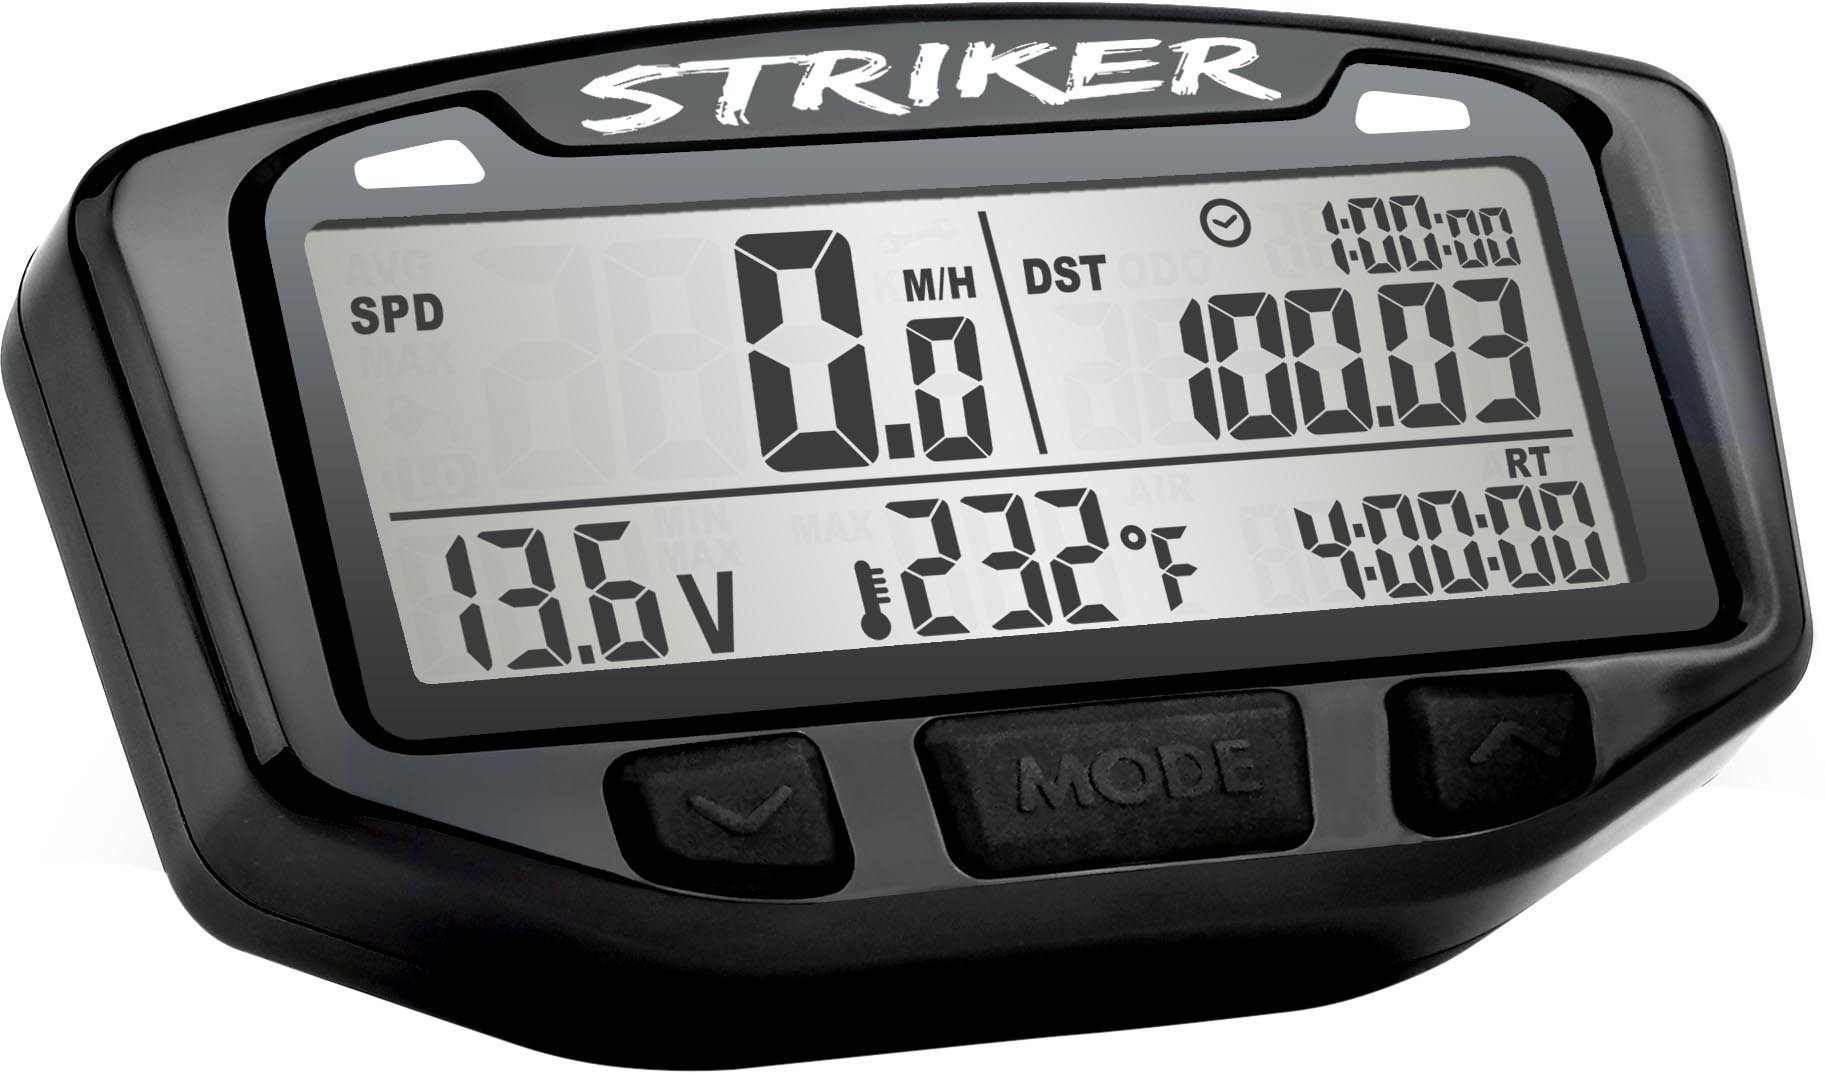 712-118 Trail Tech Striker Digital Gauge Polaris,Yamaha,Kawasaki,Suzuki,Can